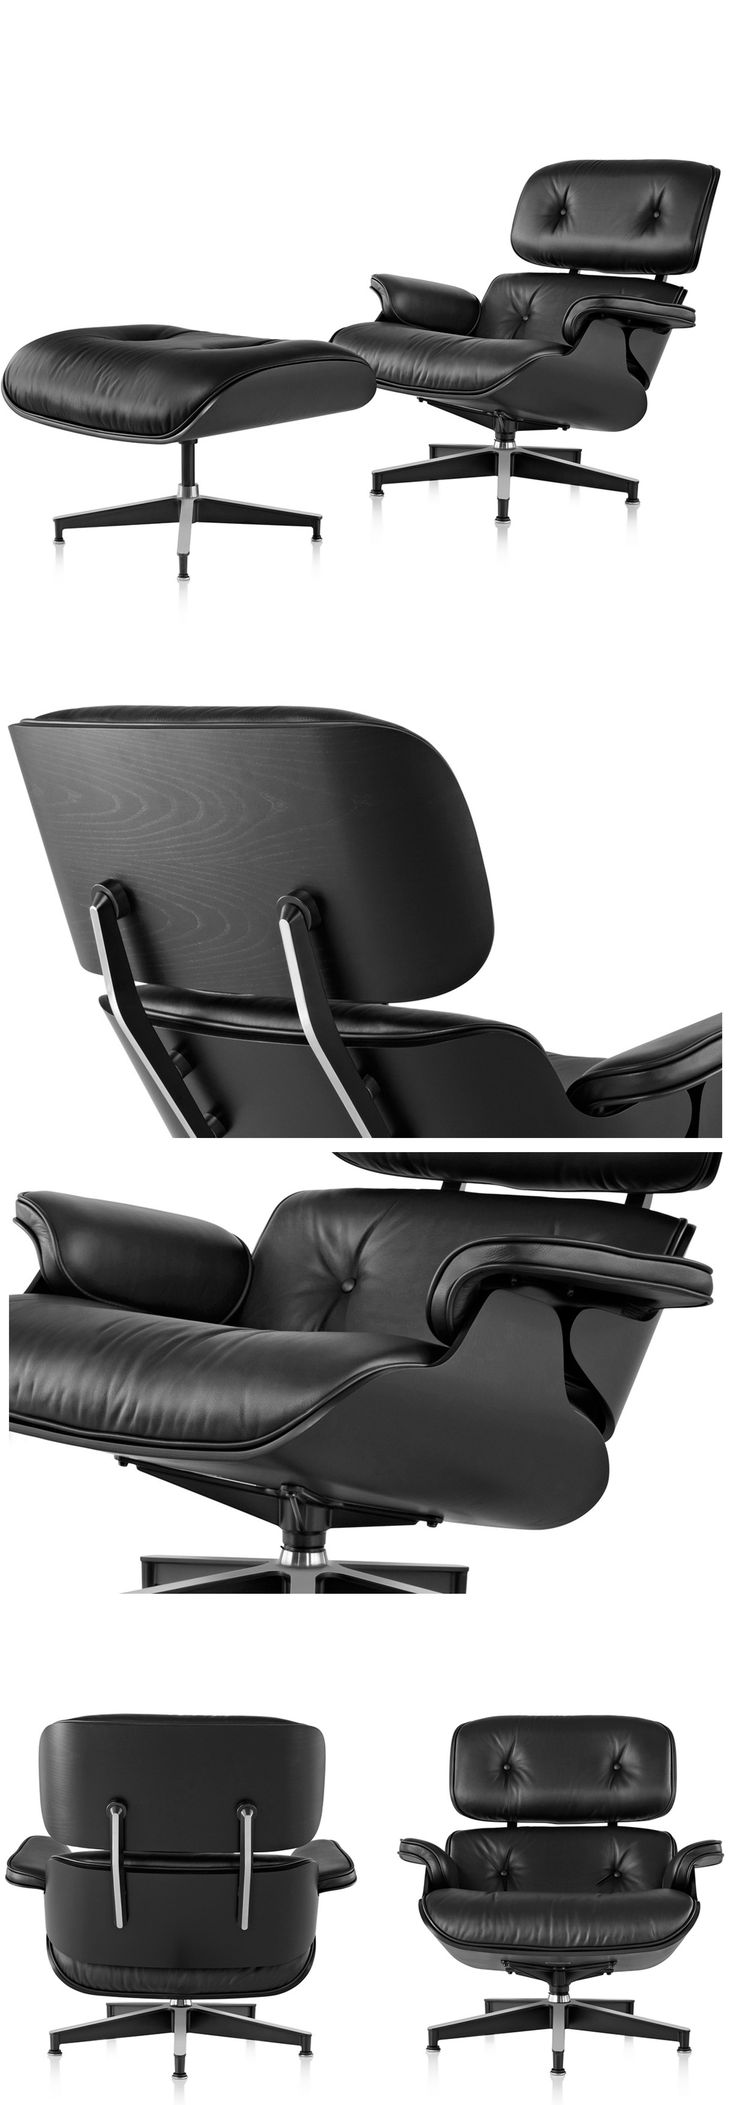 Happy New Year From The Eames Office With an Ebony Eames Lounge Chair and Ottoman by @hermanmiller